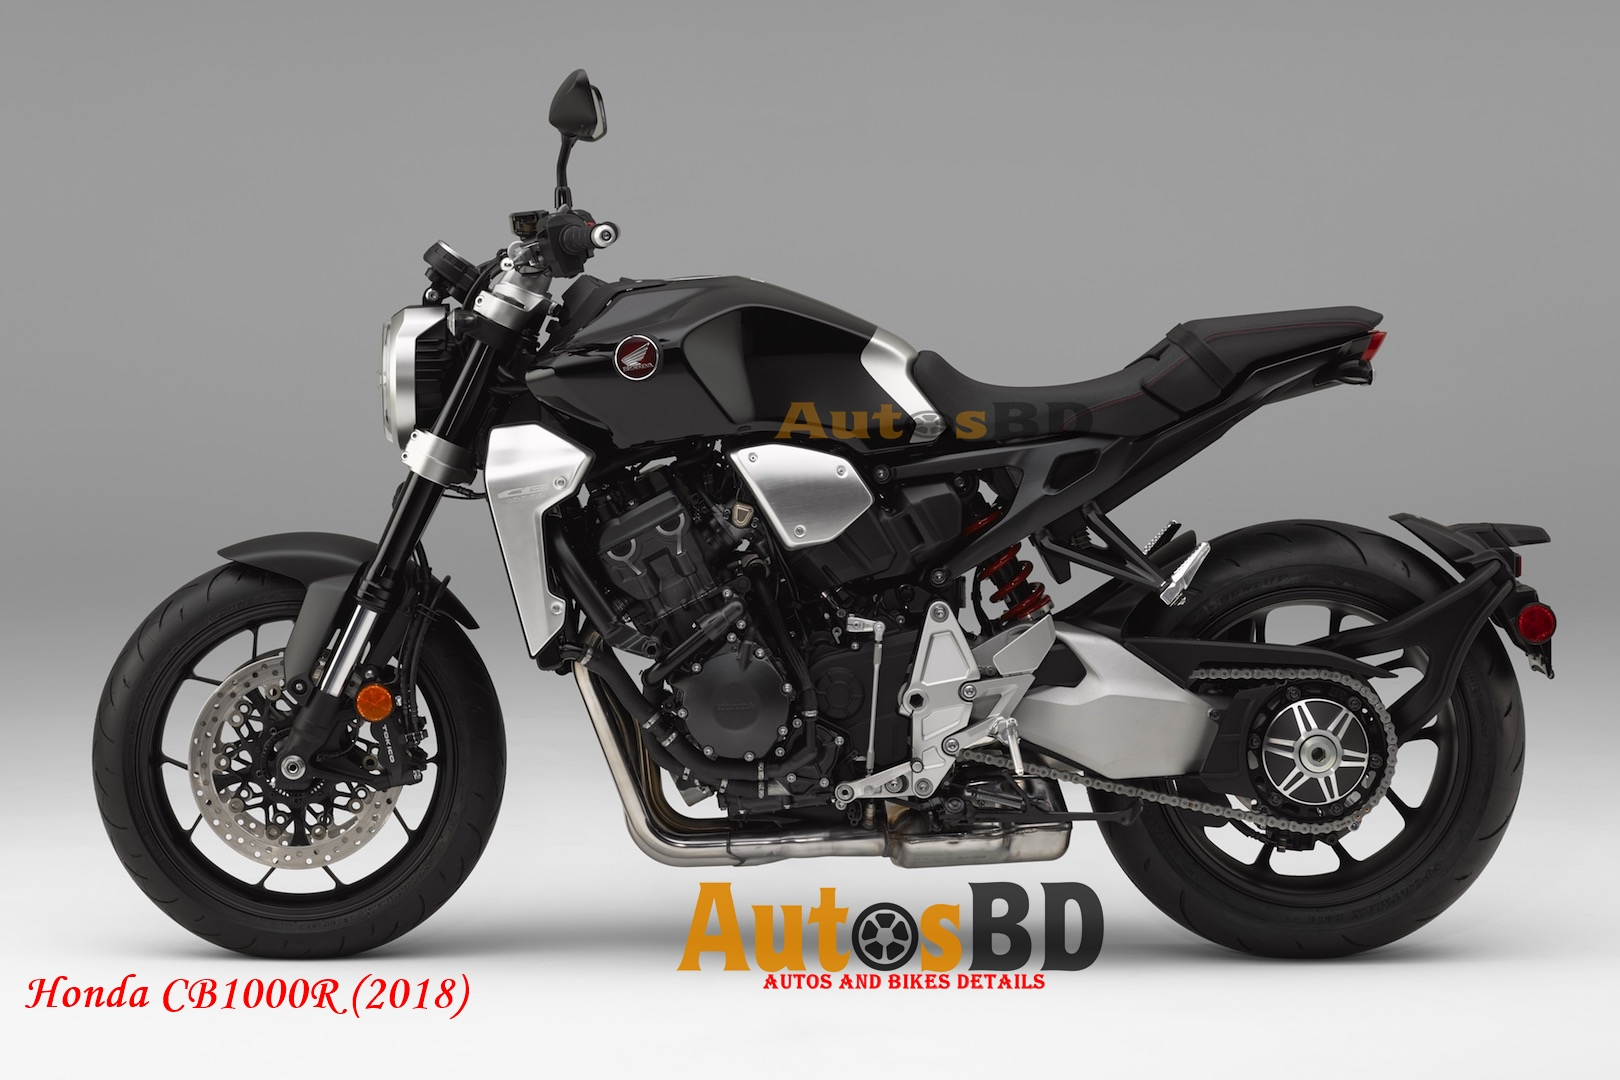 Honda CB1000R (2018) Motorcycle Price in India